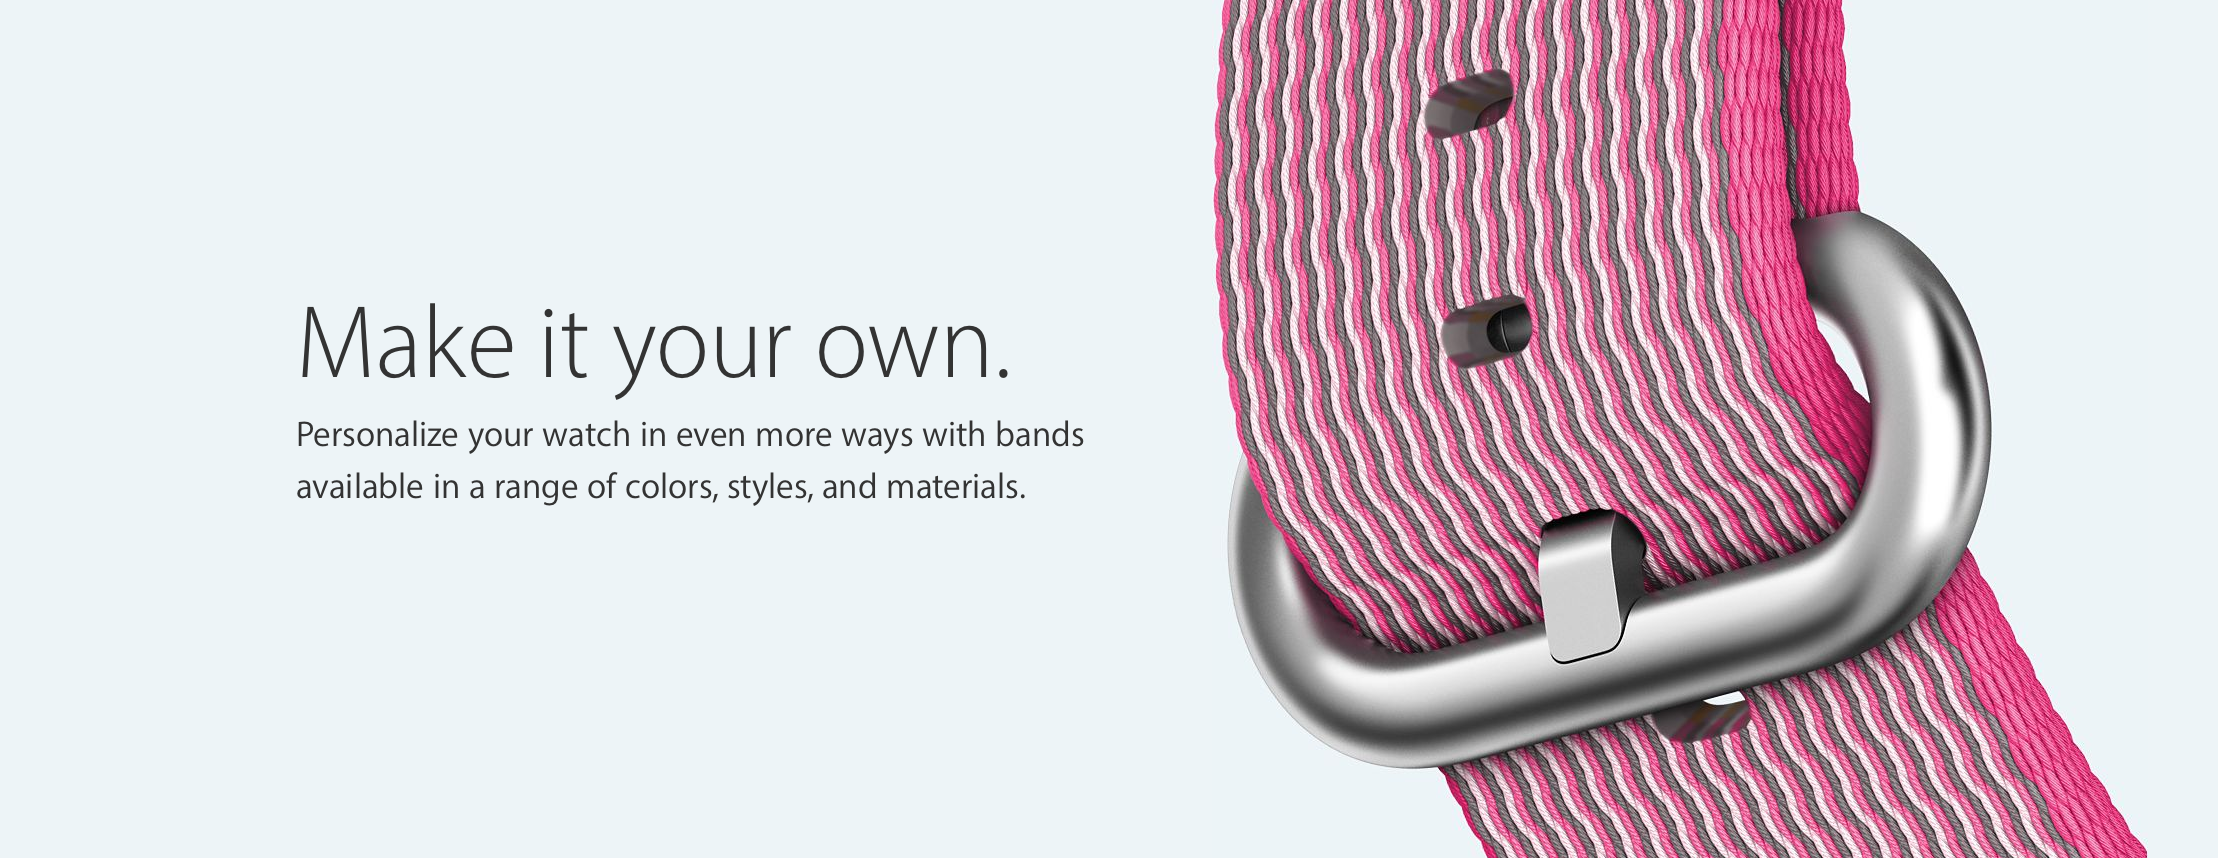 New Nylon Apple Watch Bands